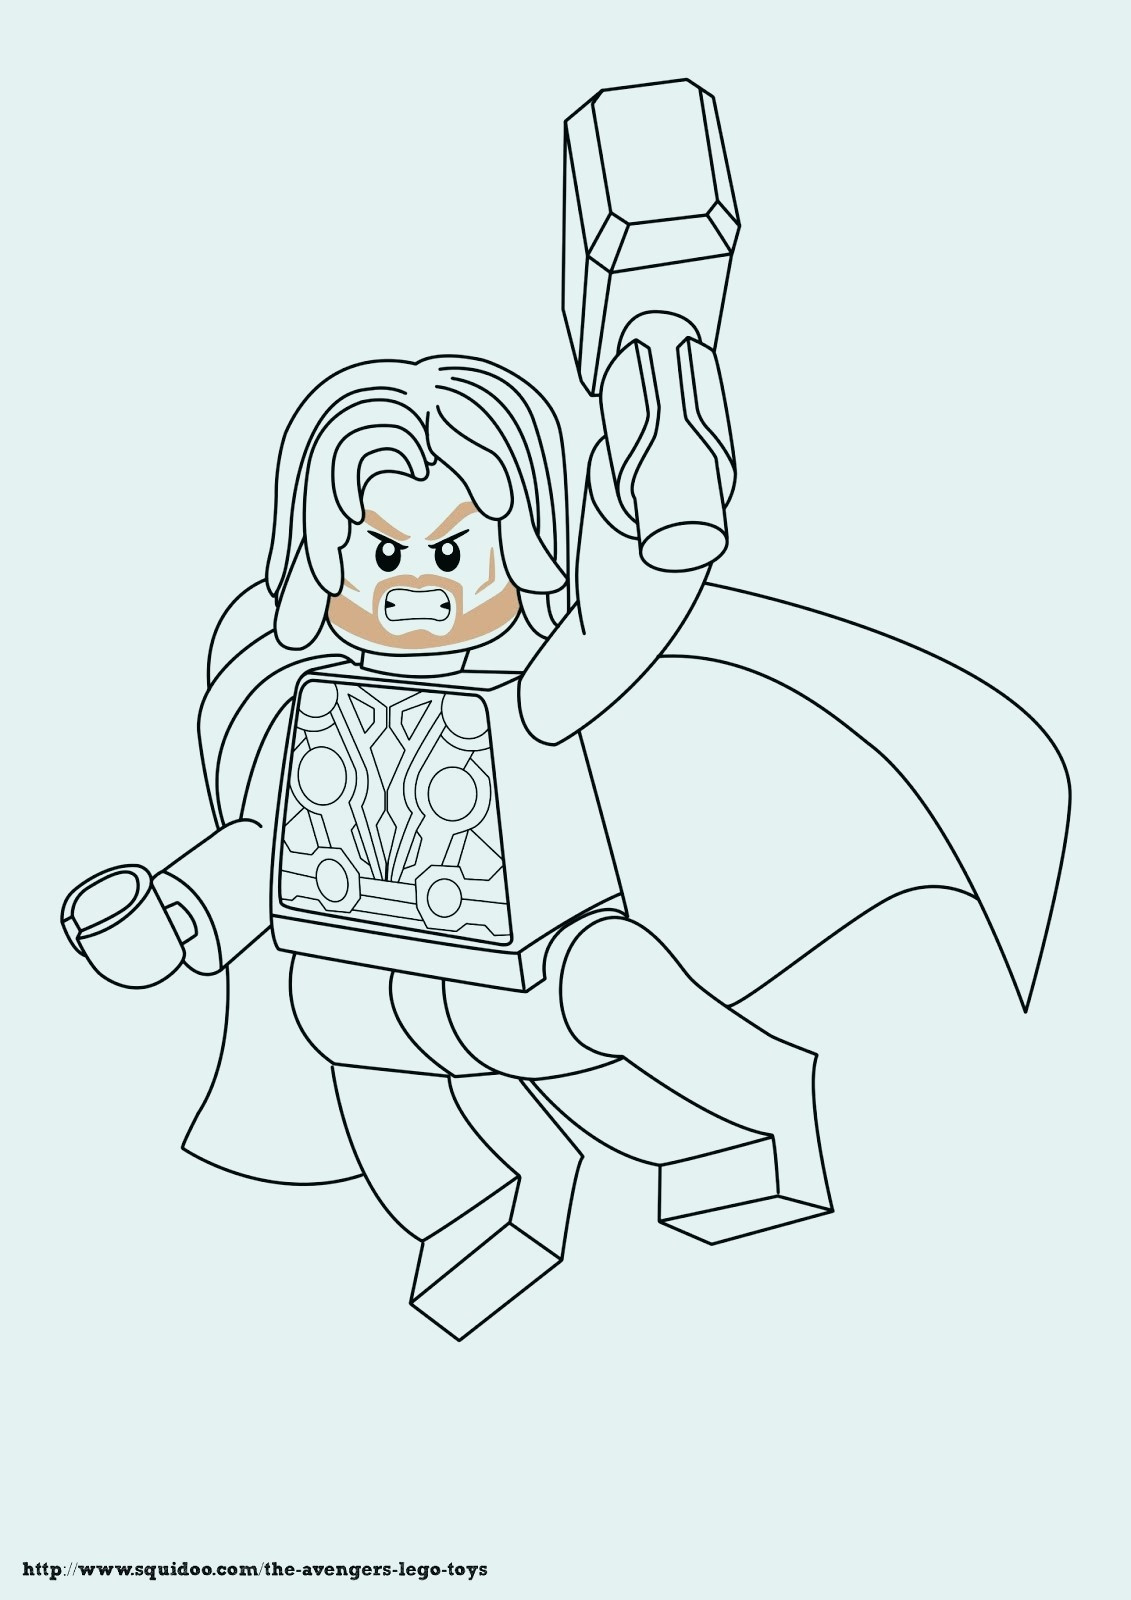 Ausmalbilder Von Ninjago Inspirierend Lego Superheroes Coloring Pages Beautiful Gallery Superhero Coloring Sammlung